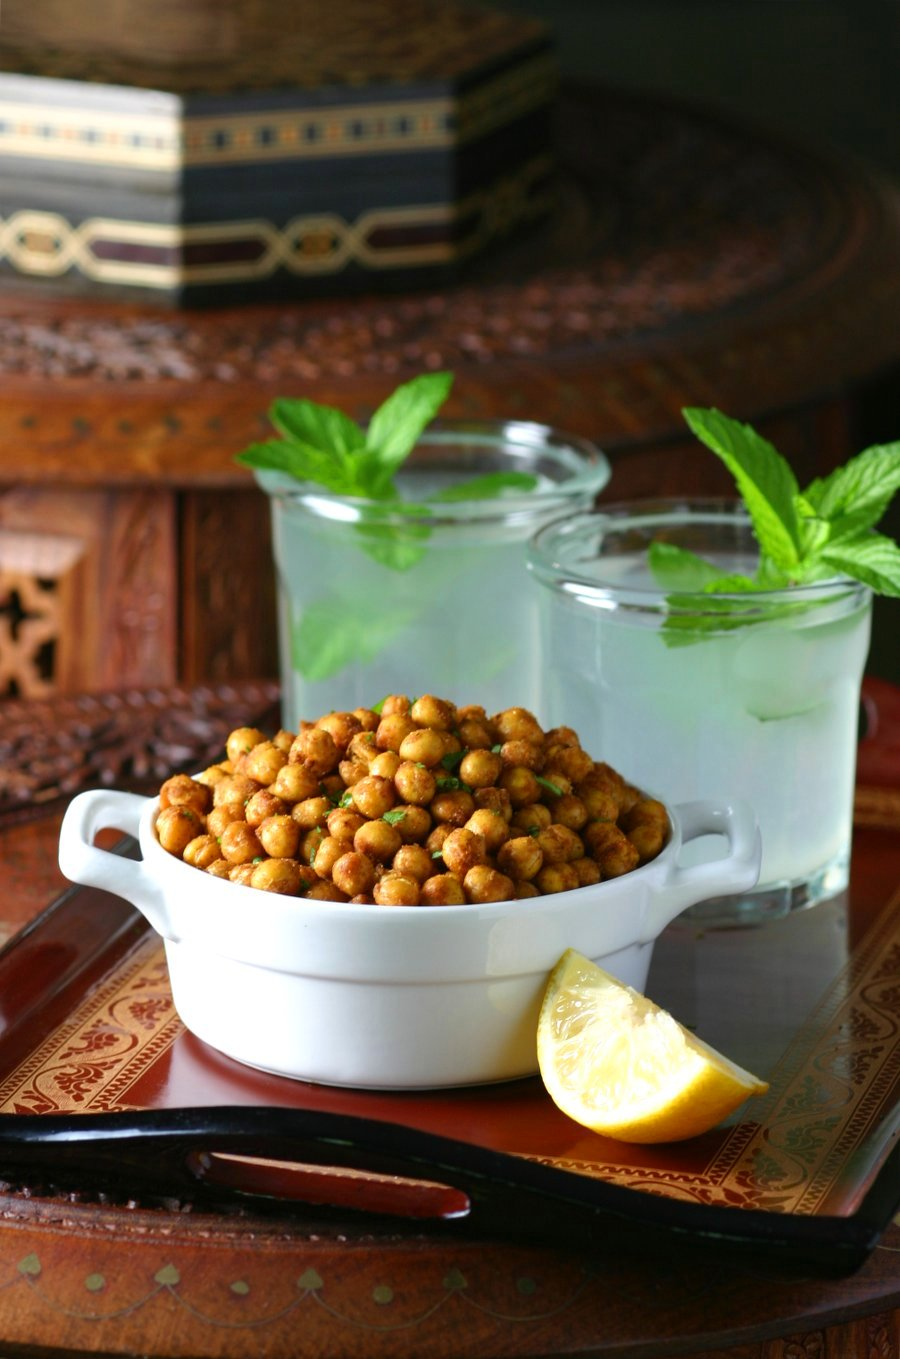 The perfect high protein snack, Falafel-Spiced Roasted Chickpeas are crunchy, spicy, and feature all the flavor of falafel with very little effort.